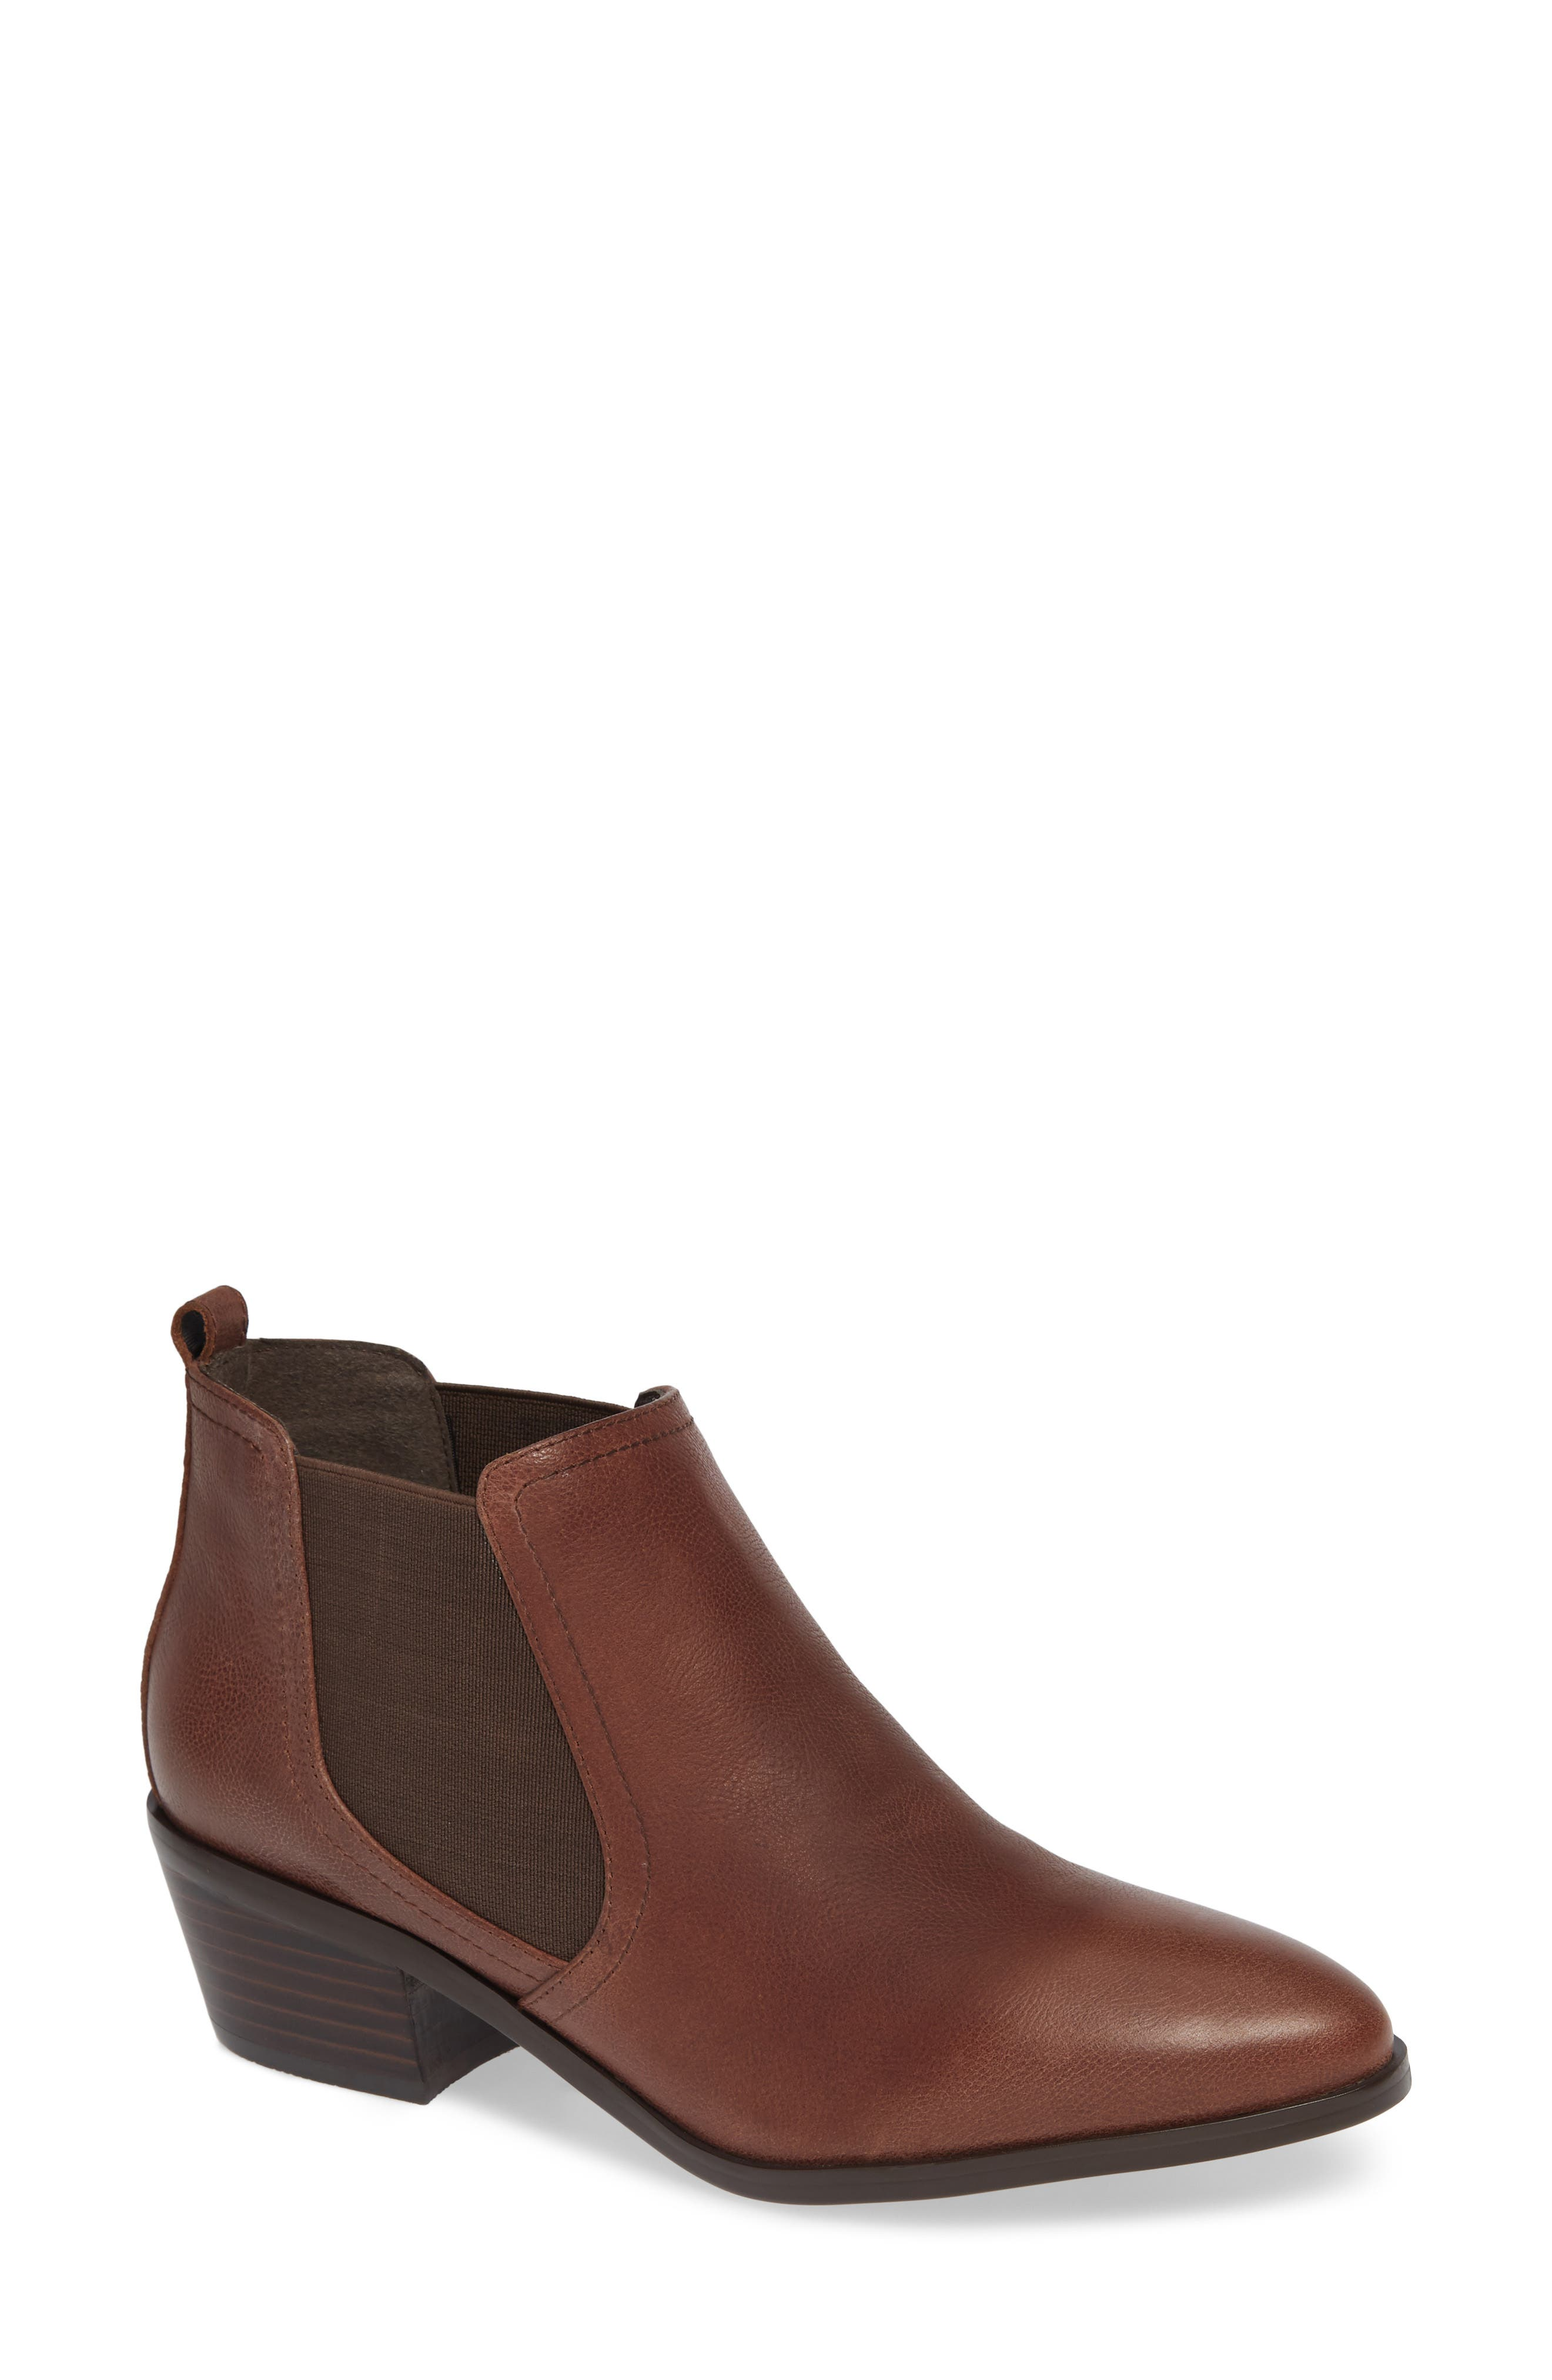 David Tate Maxie Chelsea Boot- Brown